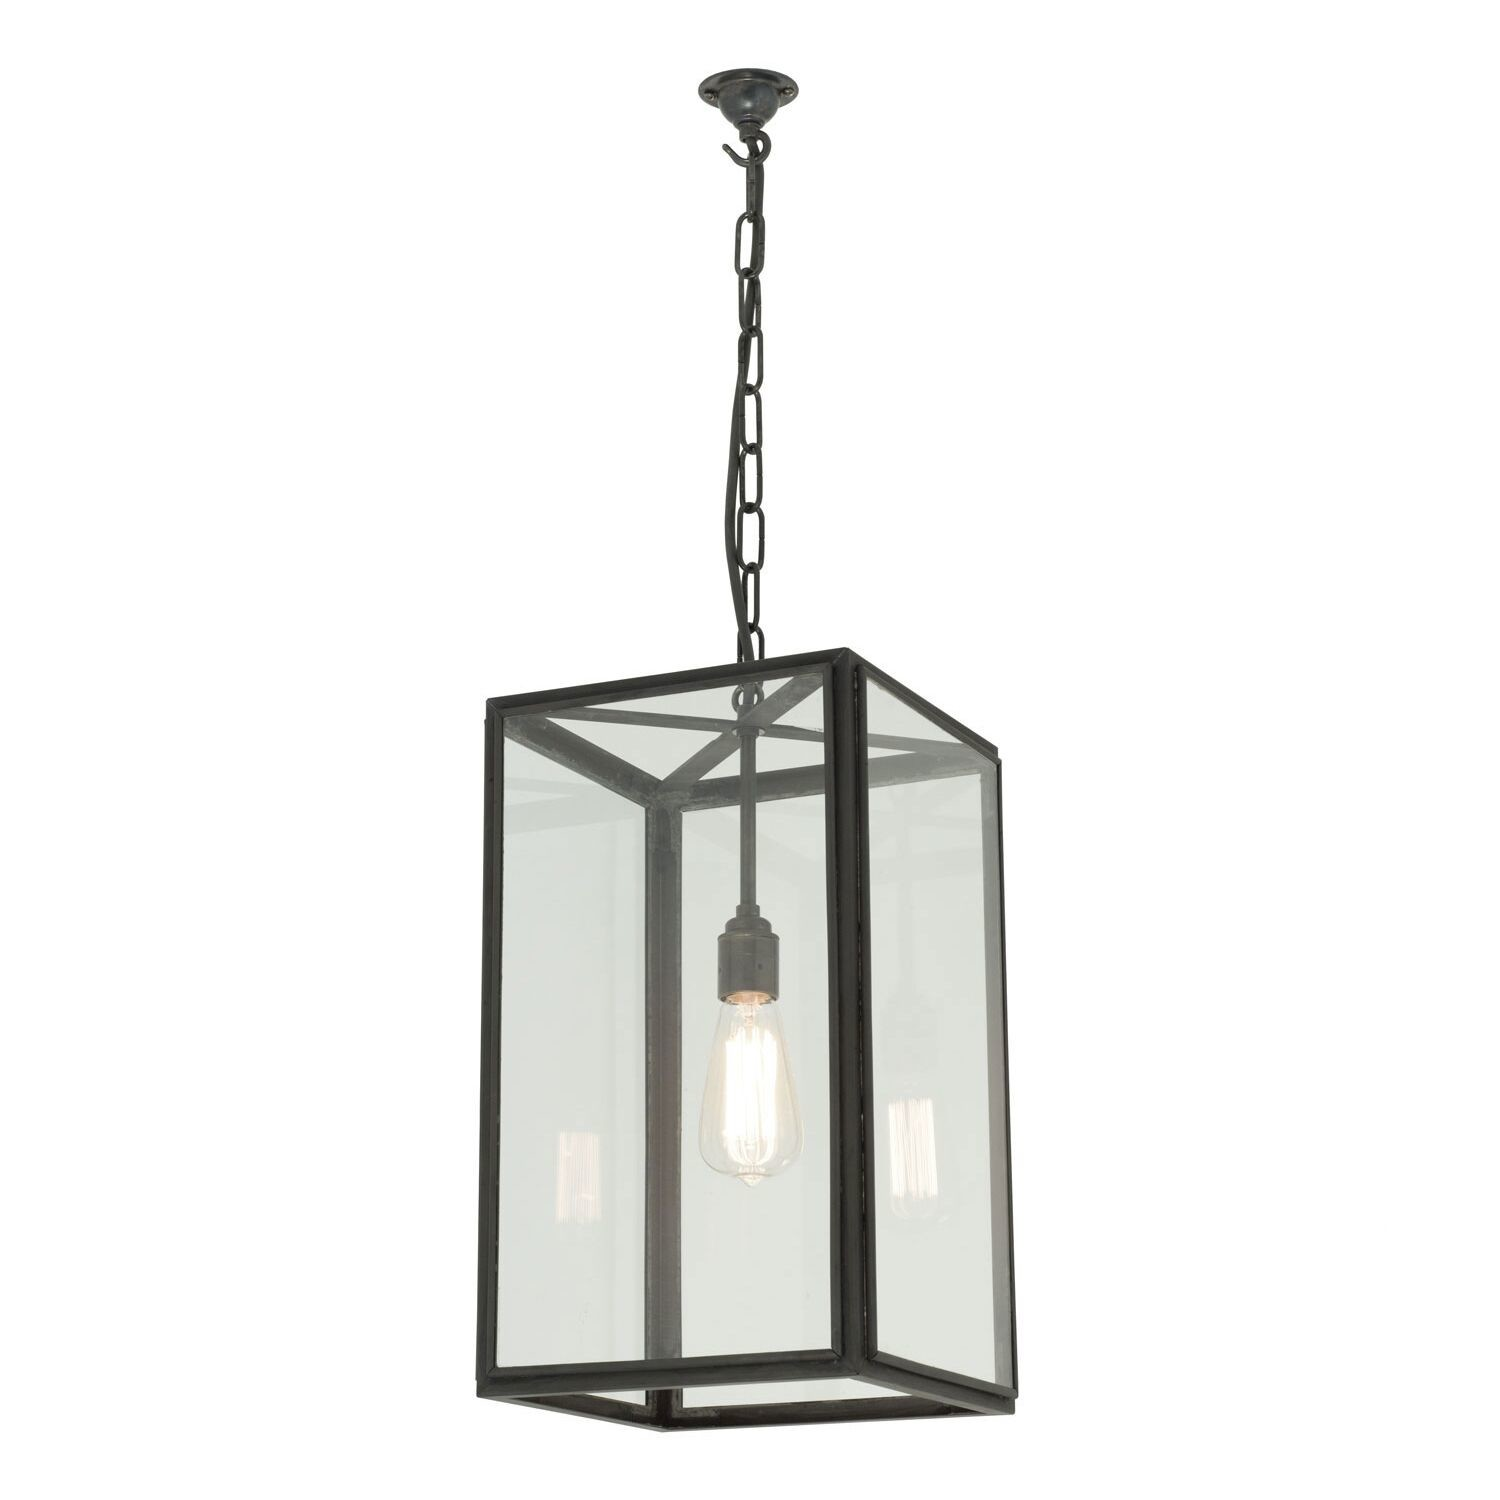 Square Pendant Light 7639 Clear glass, Medium